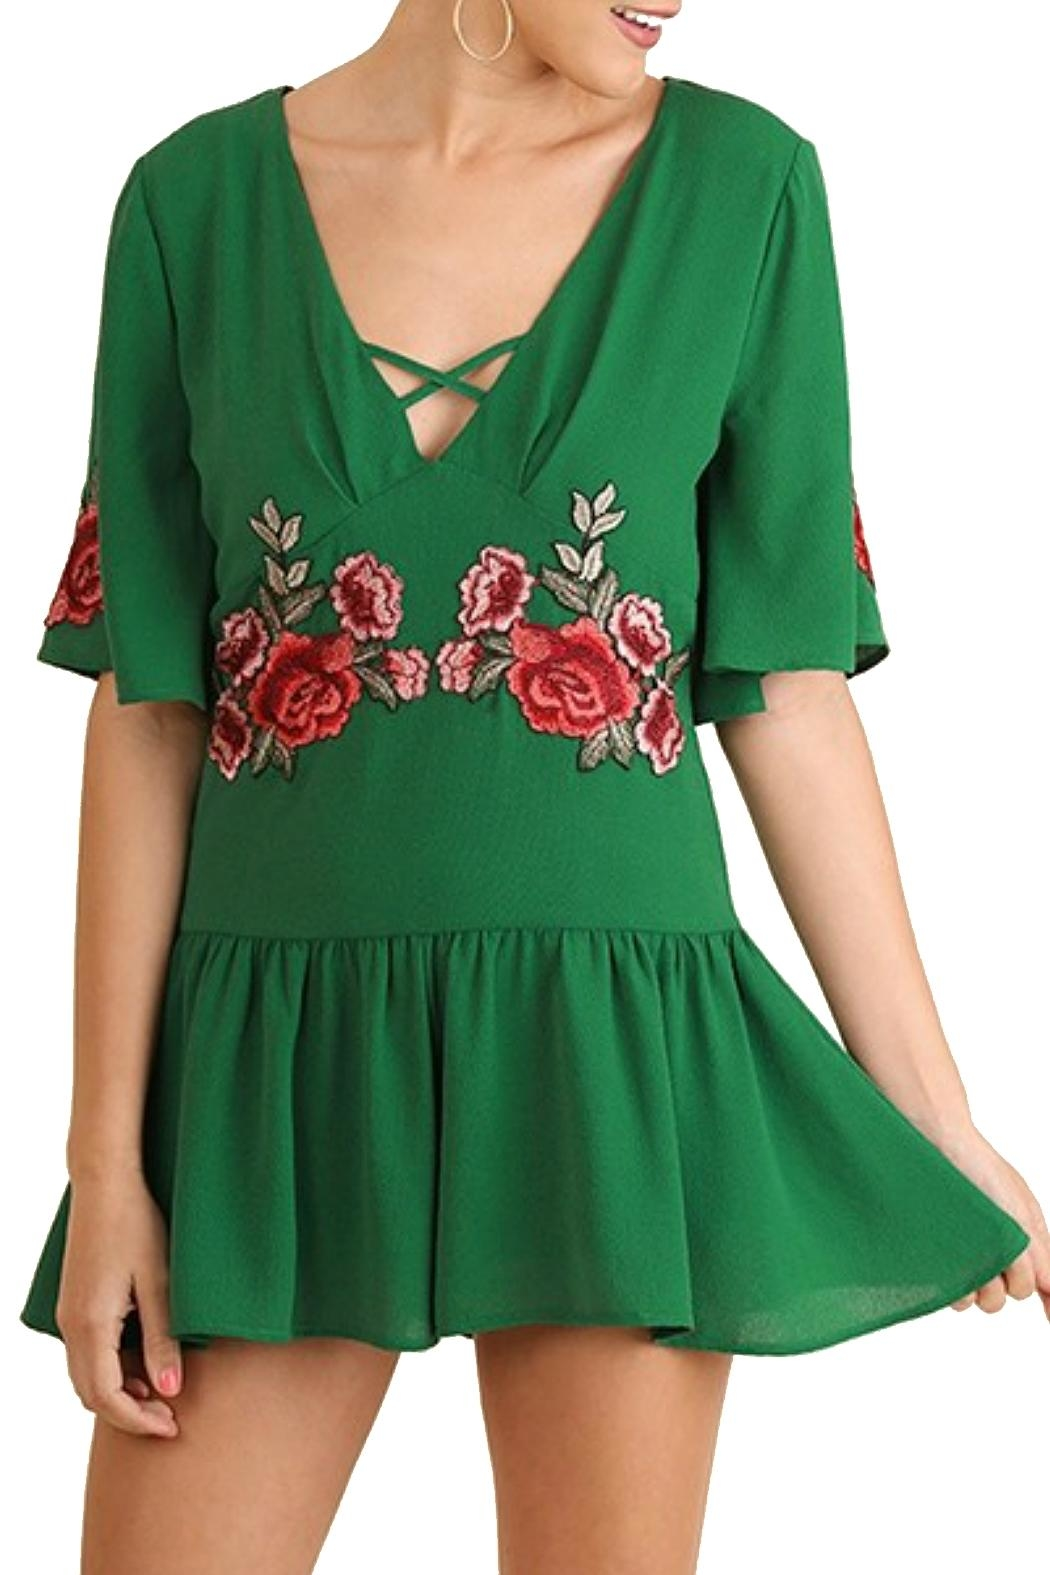 Minx Kelly Embroidered Romper - Main Image